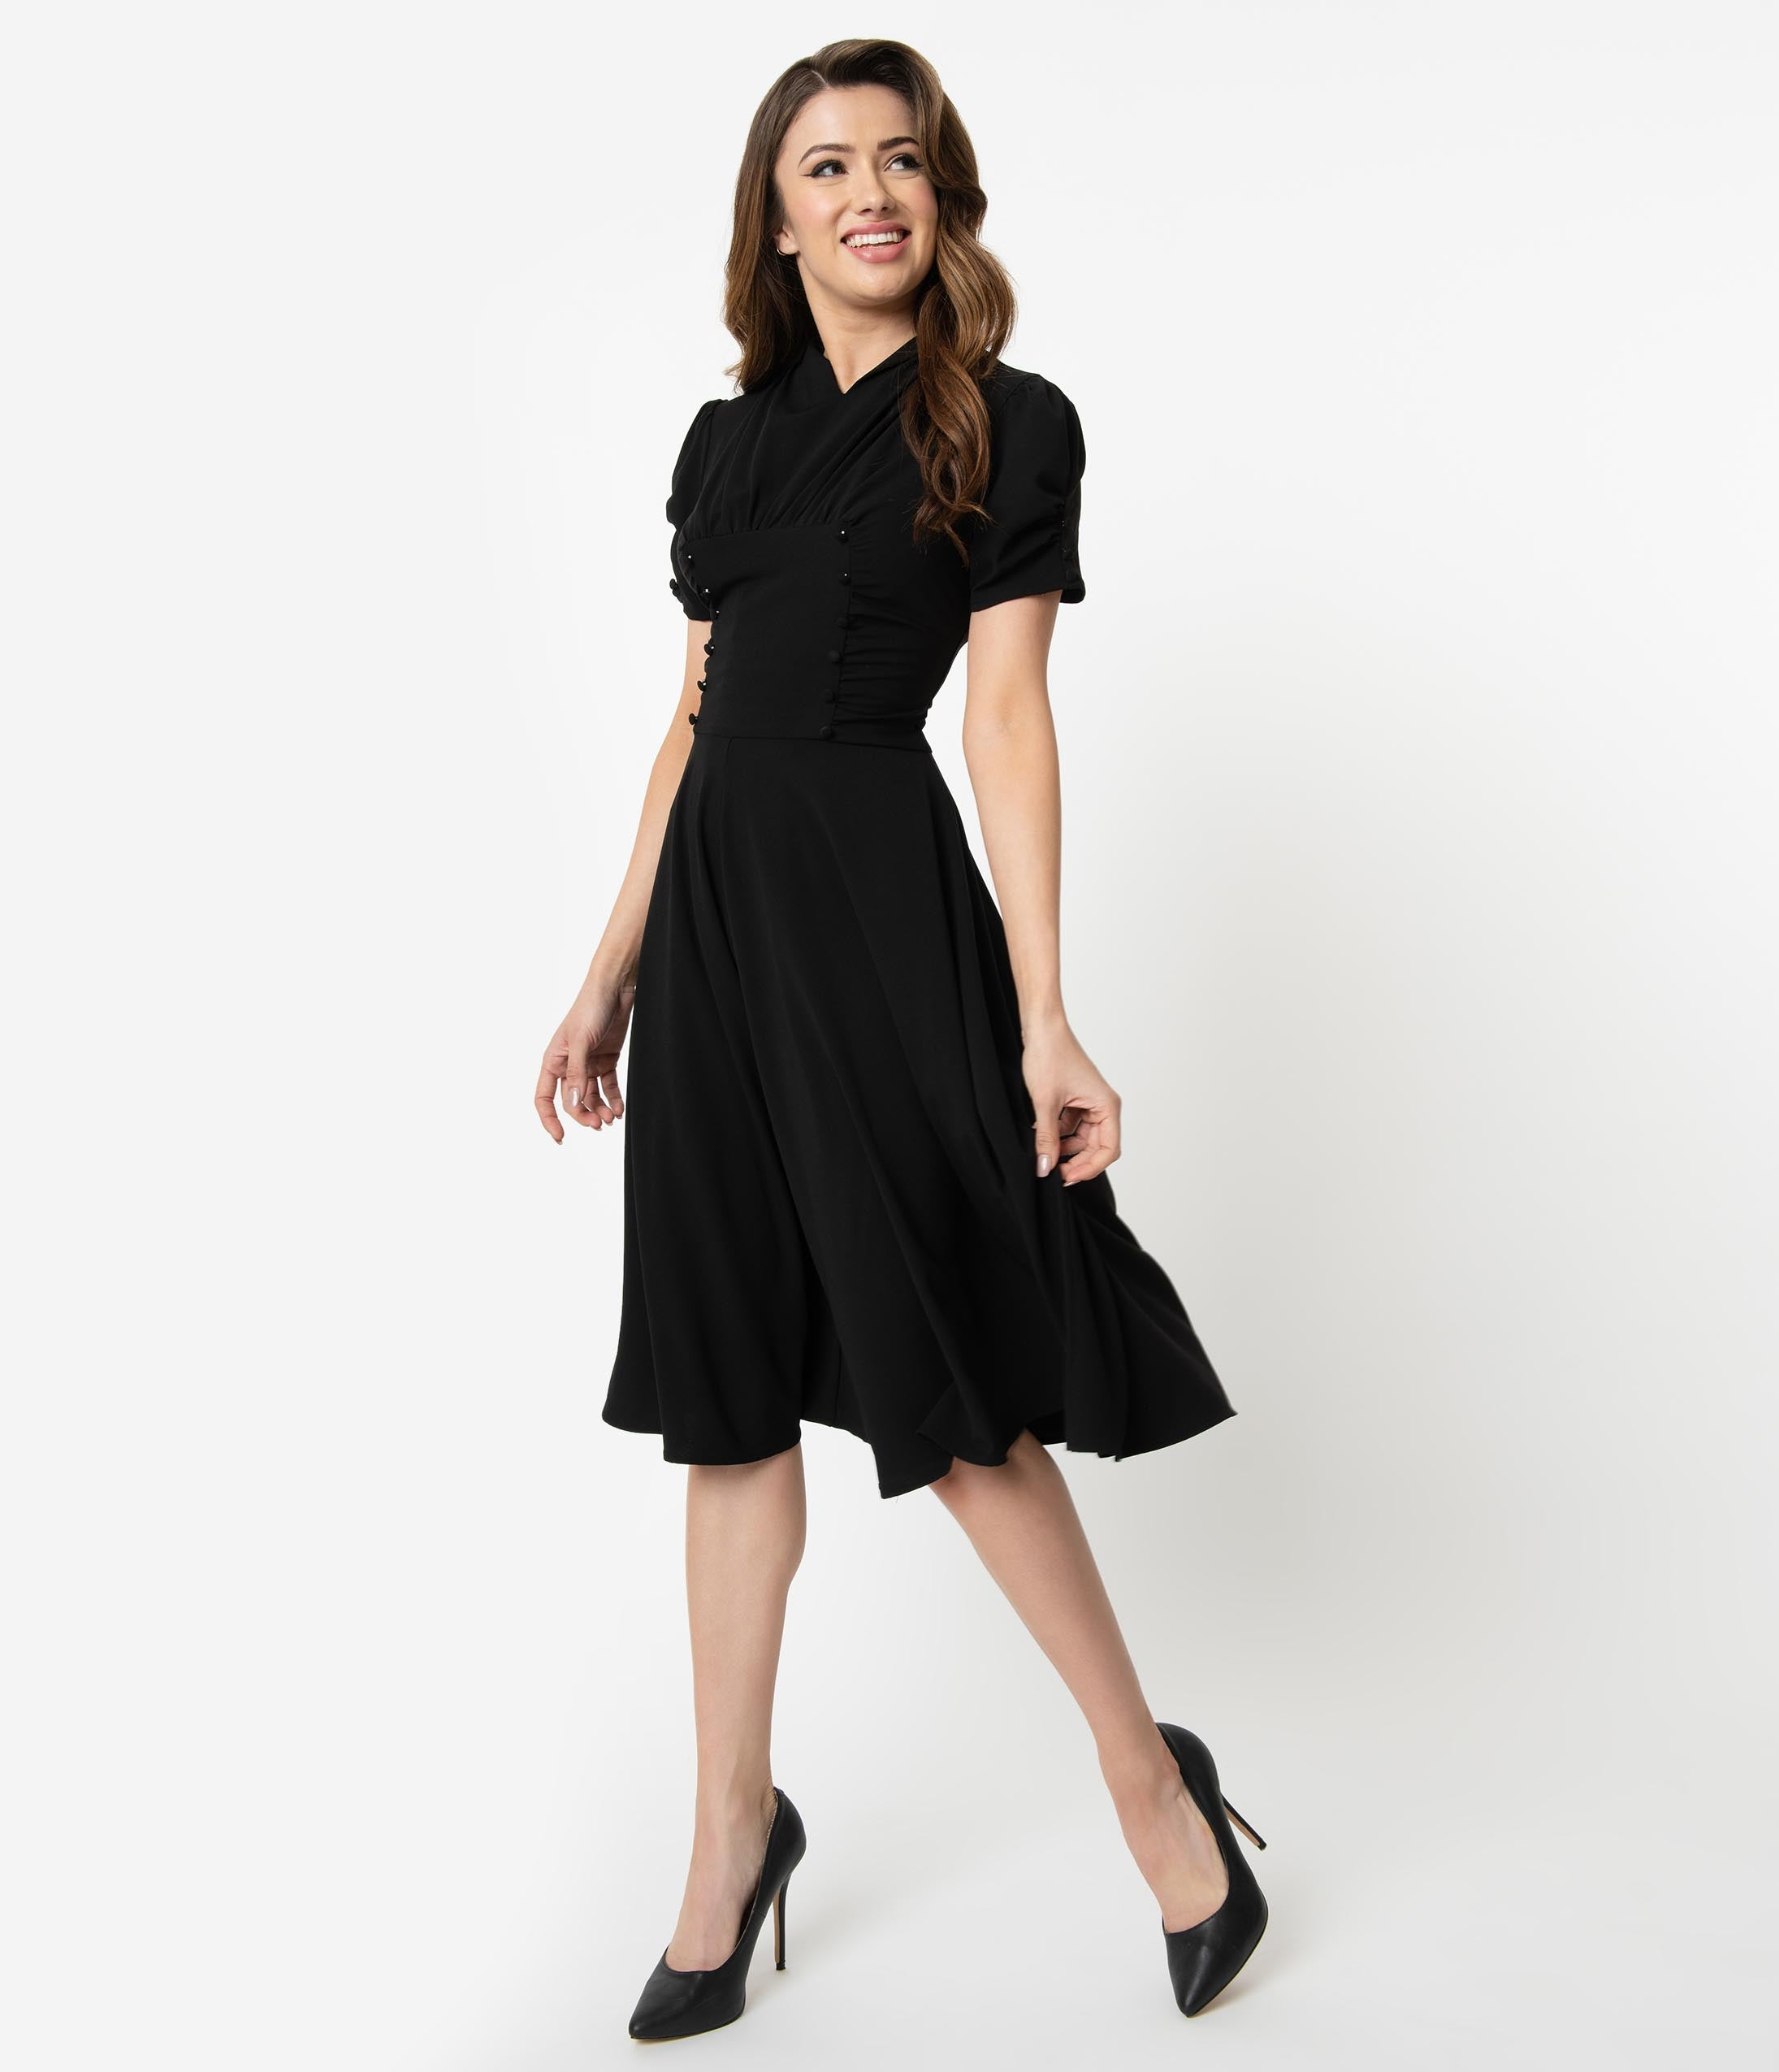 1940s Bridesmaid Dresses, Mother of the Bride Unique Vintage 1940S Style Black Short Sleeve Camilla Midi Dress $88.00 AT vintagedancer.com